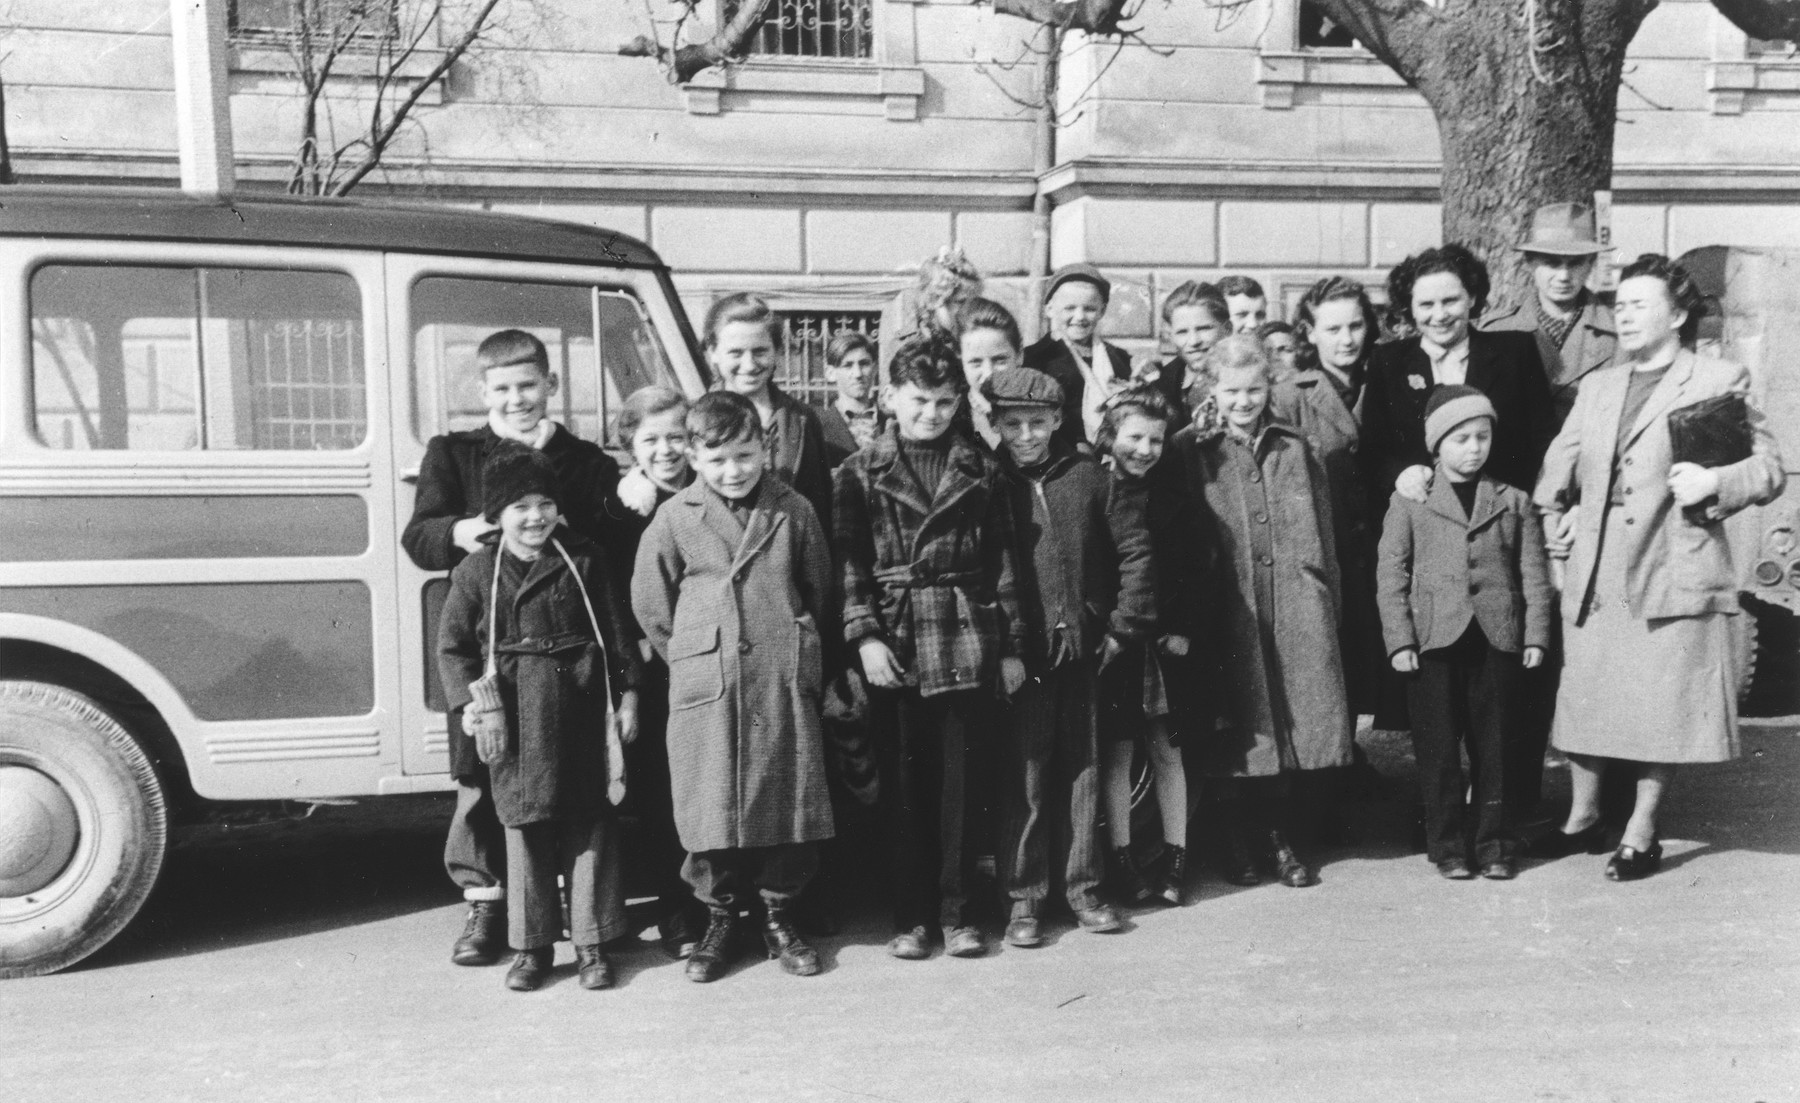 DP children from the Bad Schallerbach children's home pose with members of the staff before their departure for the United States.